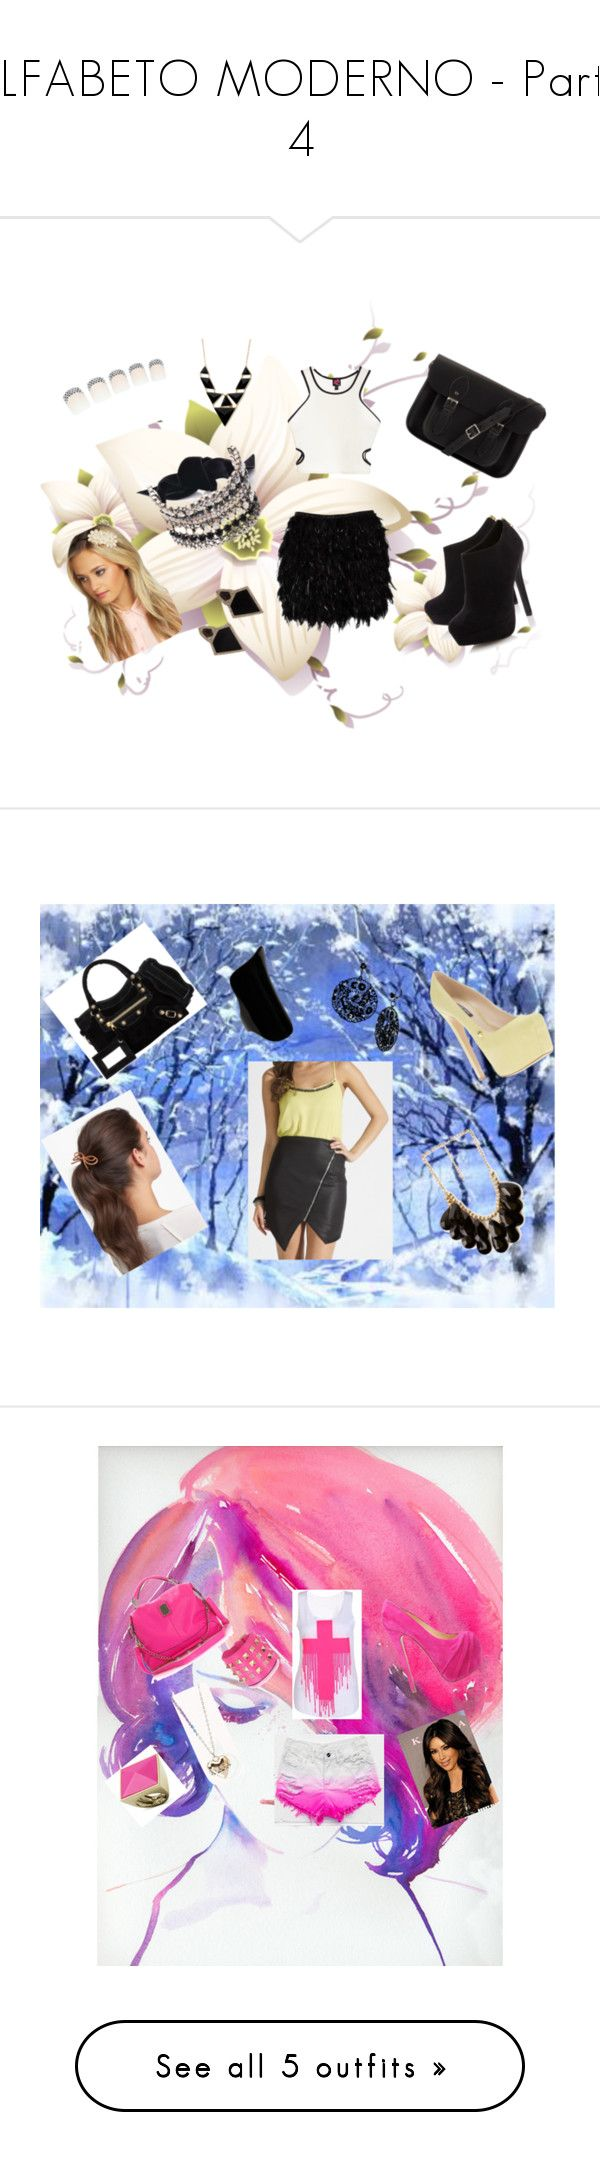 """""""ALFABETO MODERNO - Parte 4"""" by anninha1d ❤ liked on Polyvore featuring Notion 1.3, 2b bebe, Head Over Heels by Dune, The Cambridge Satchel Company, Boohoo, Monique Péan, MaxMara, Forever 21, Lipsy and Ruthie Davis"""